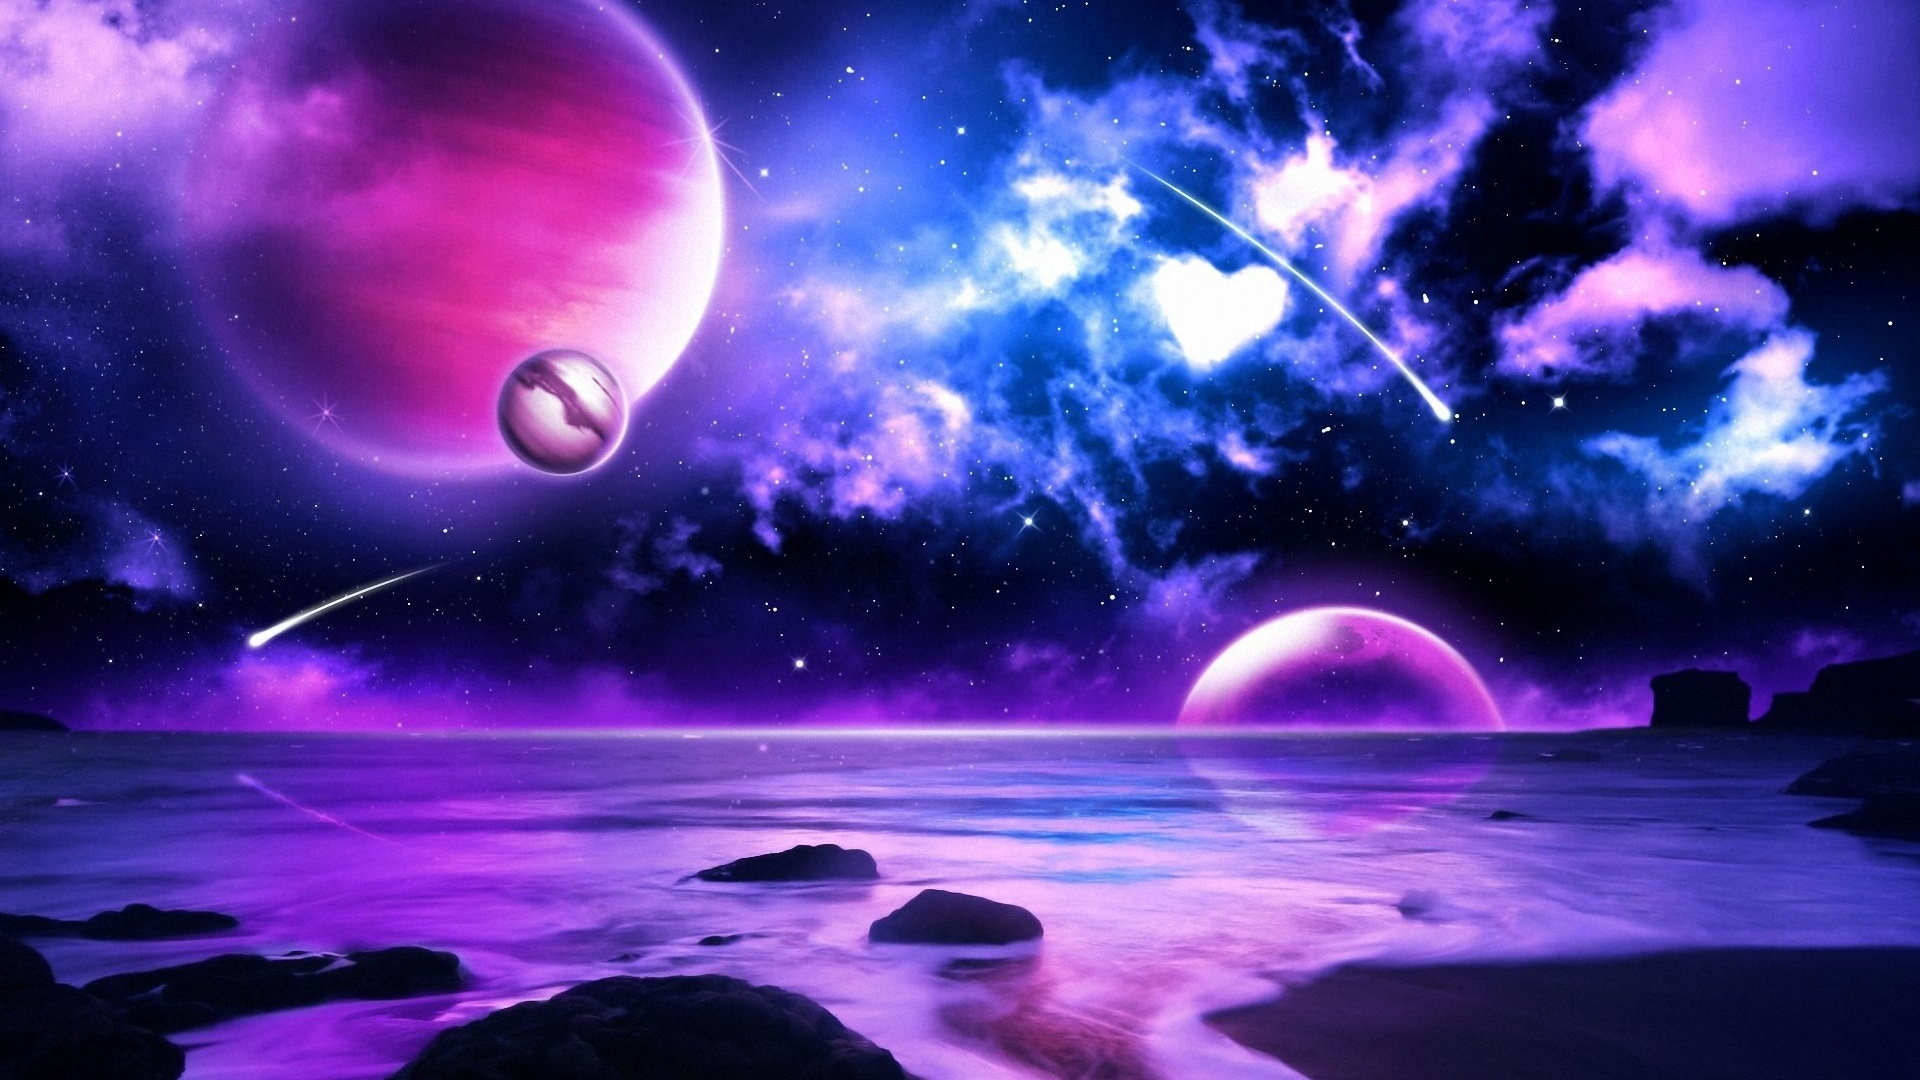 Free Download Purple Space Wallpaper Universe And All Planets